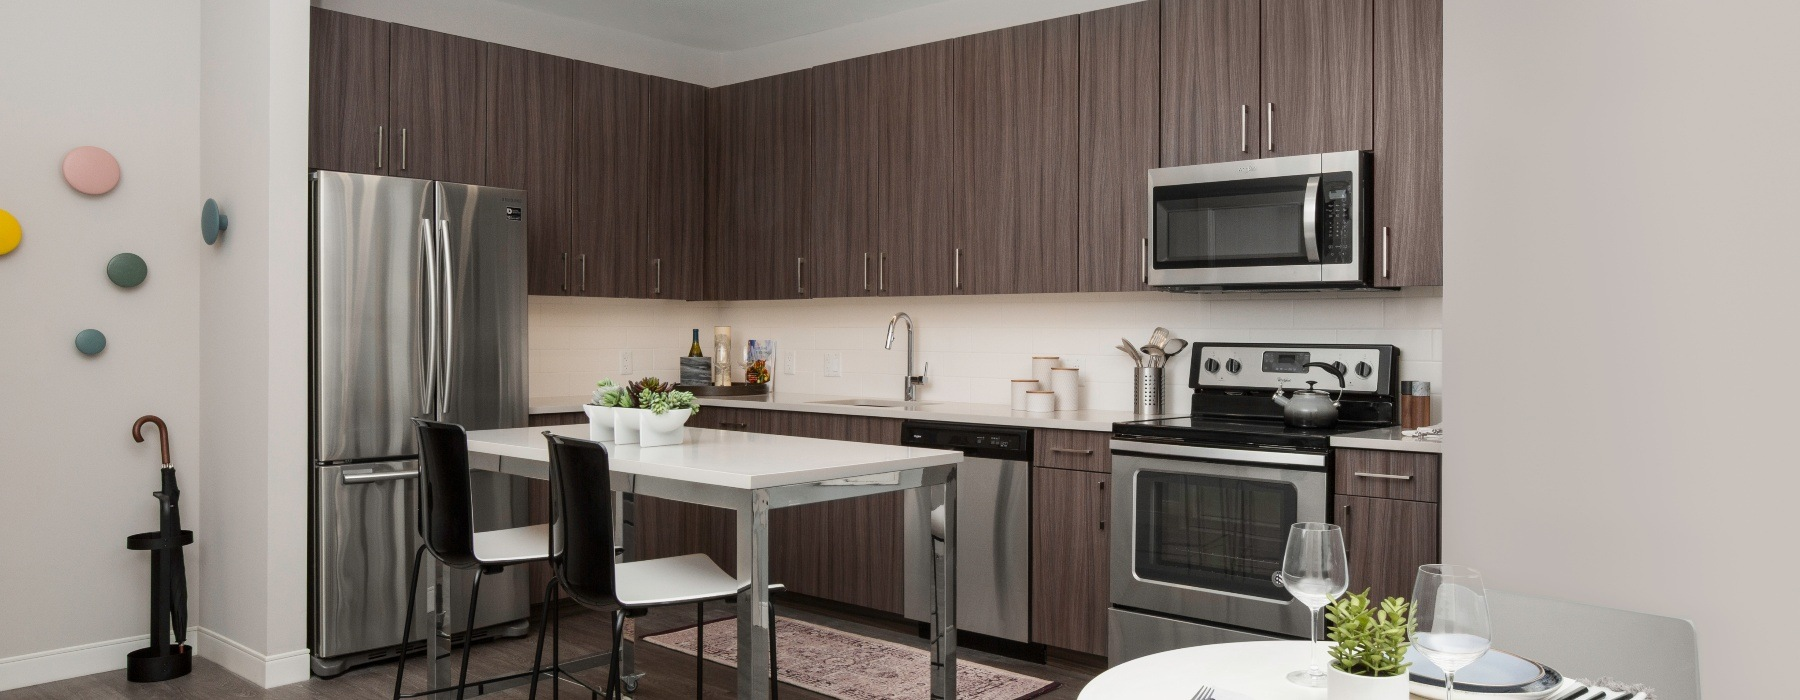 One Bedroom Kitchen at The Andi Apartments Dorchester